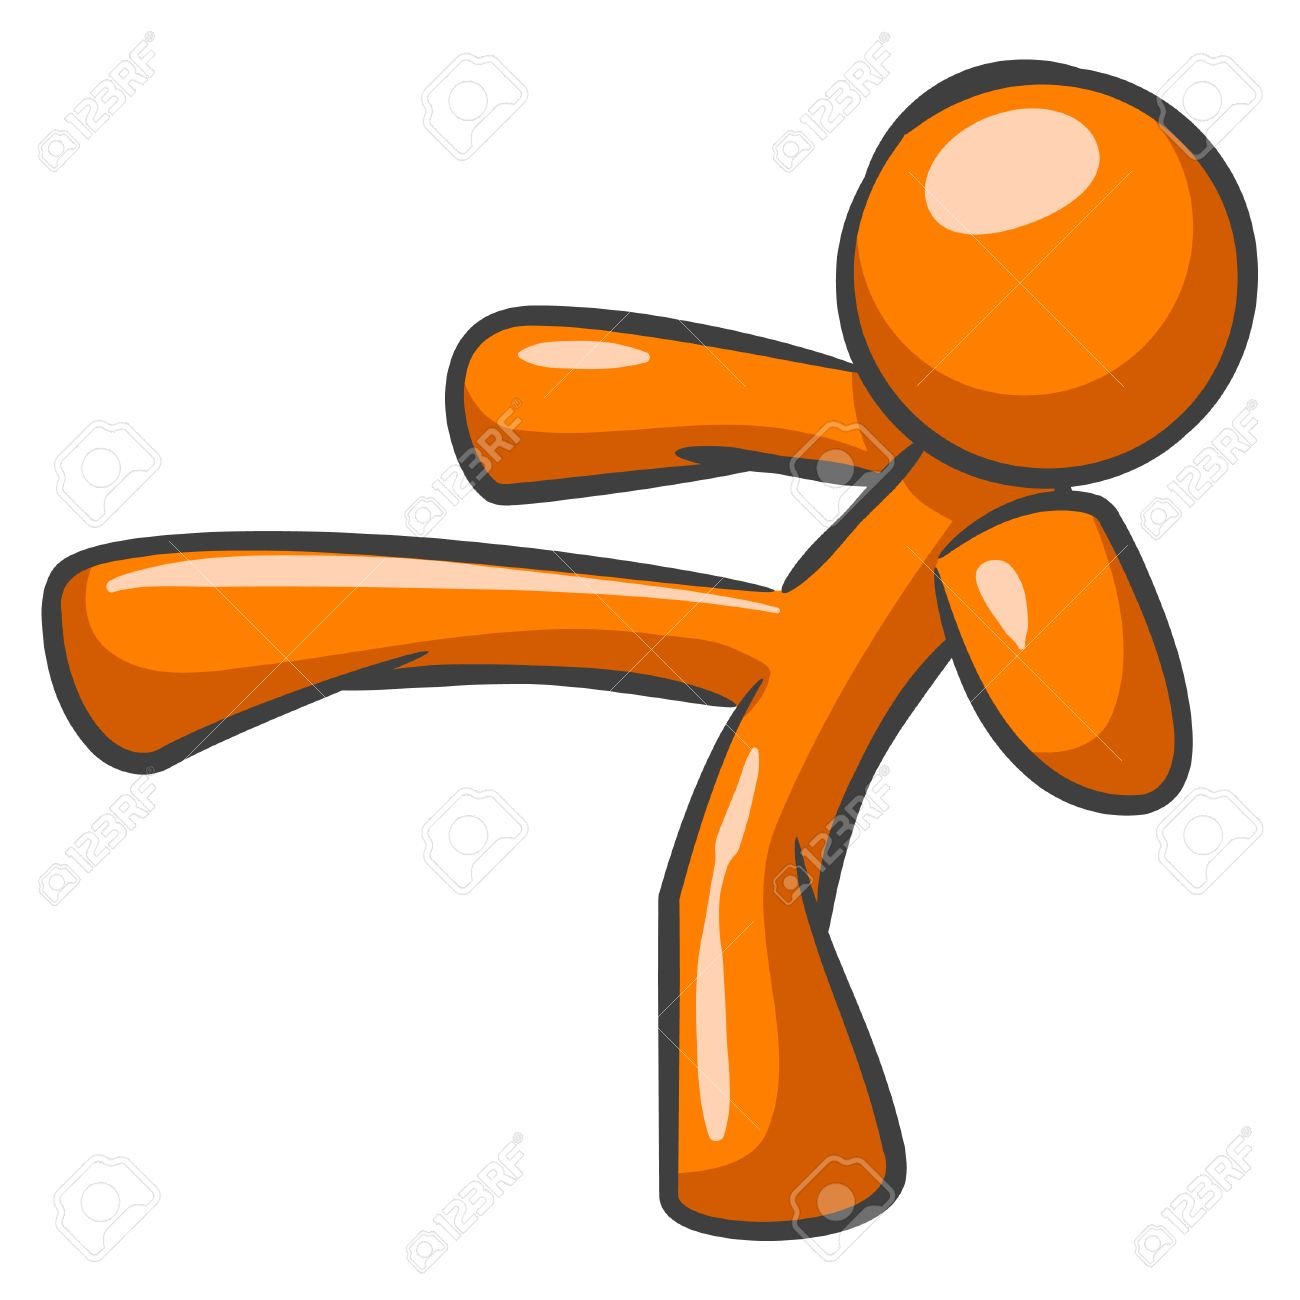 Orange Man Posed And Making A Karate Kick. Royalty Free Cliparts.